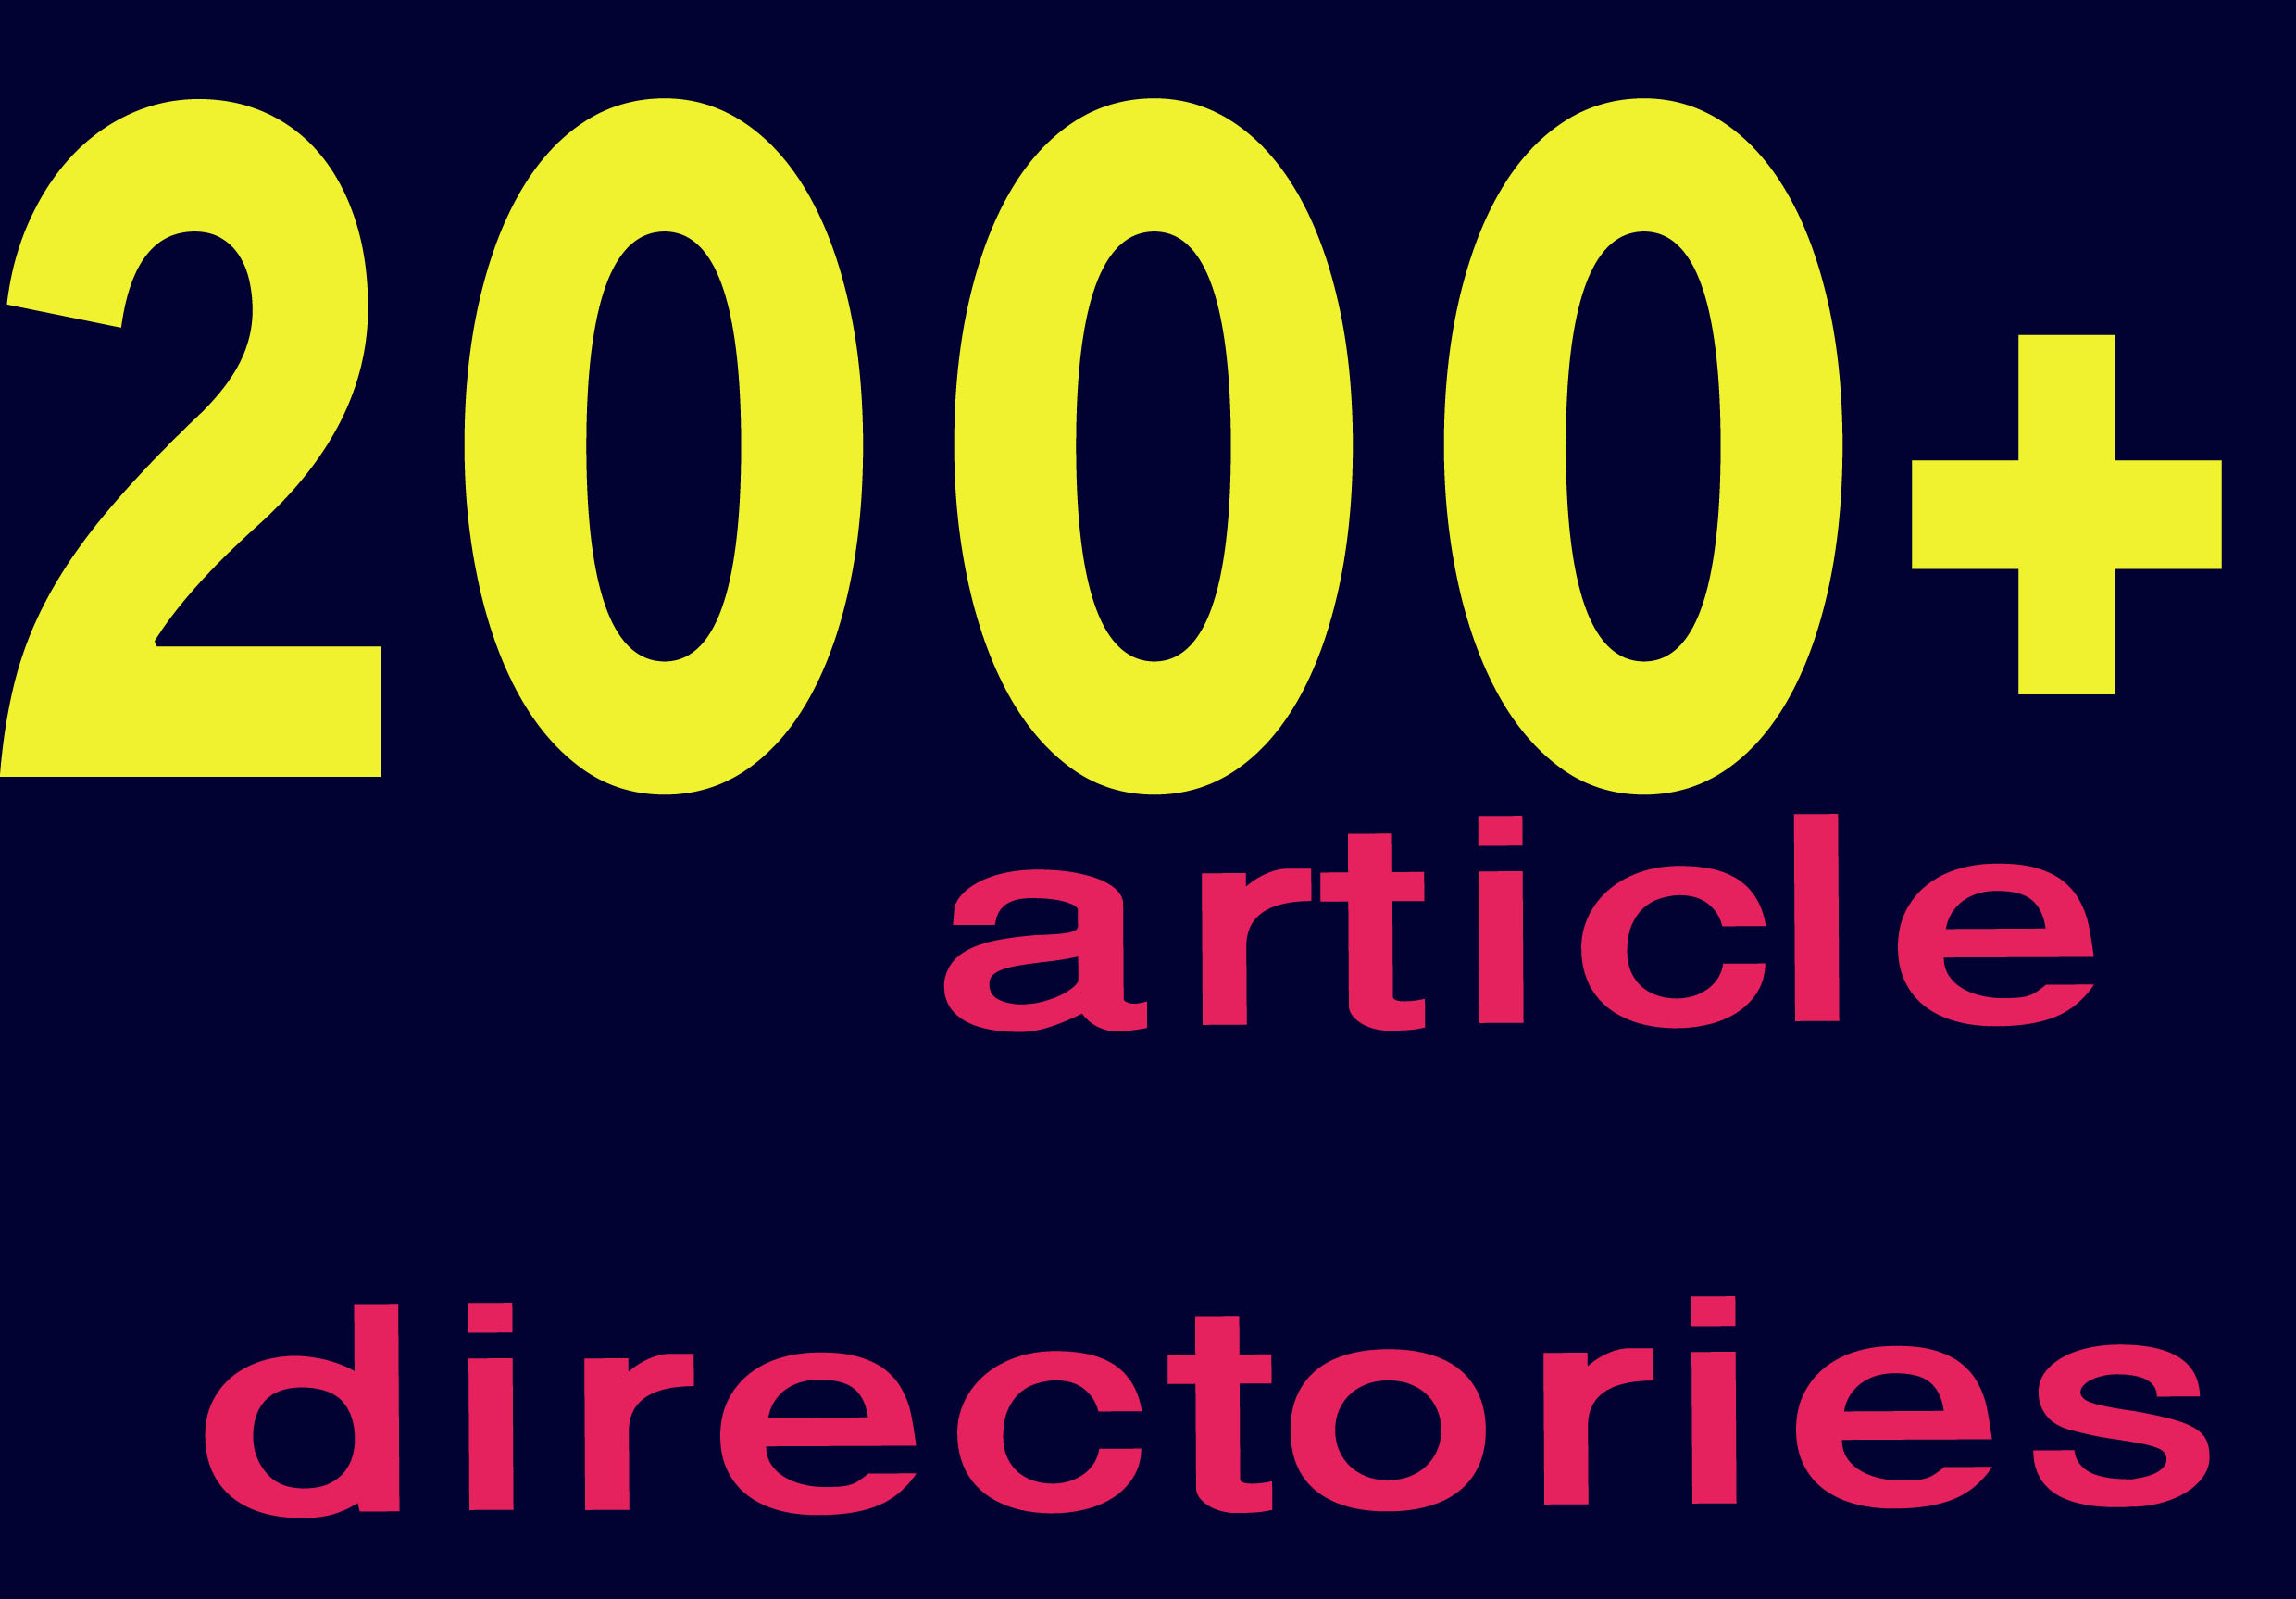 I will 2000+ article directories high quality backlinks